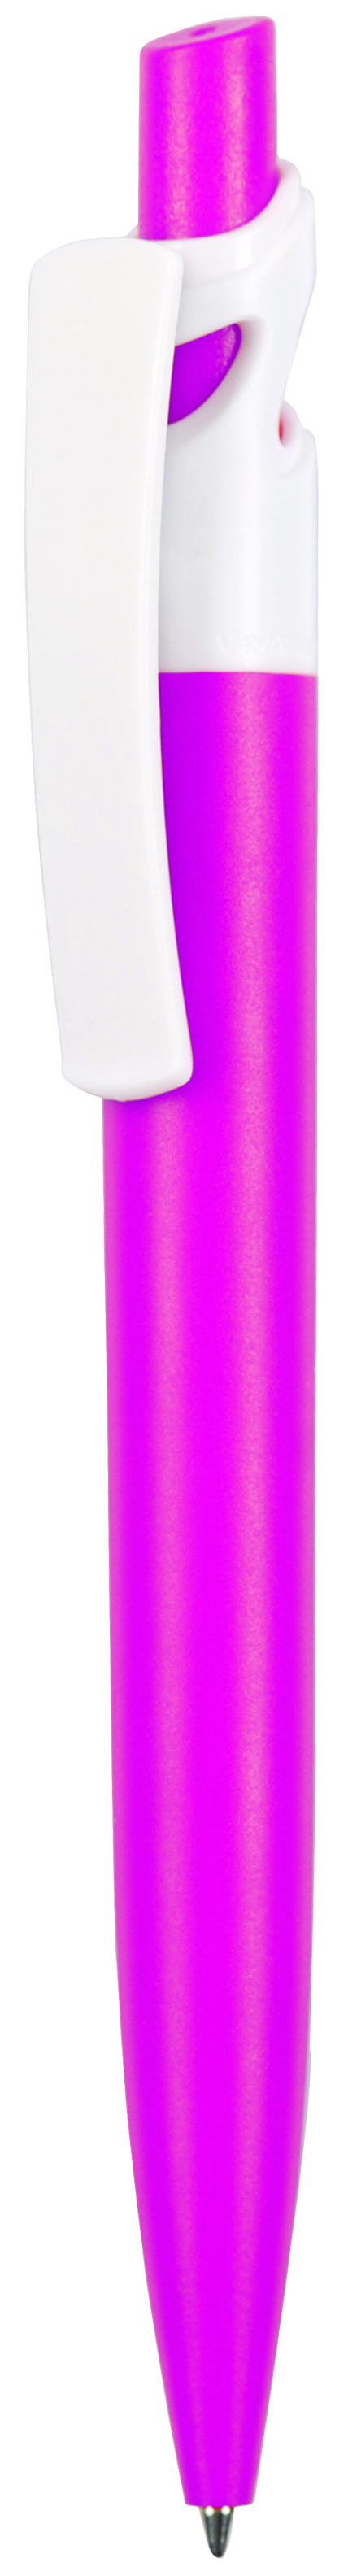 maxx_solid_pink